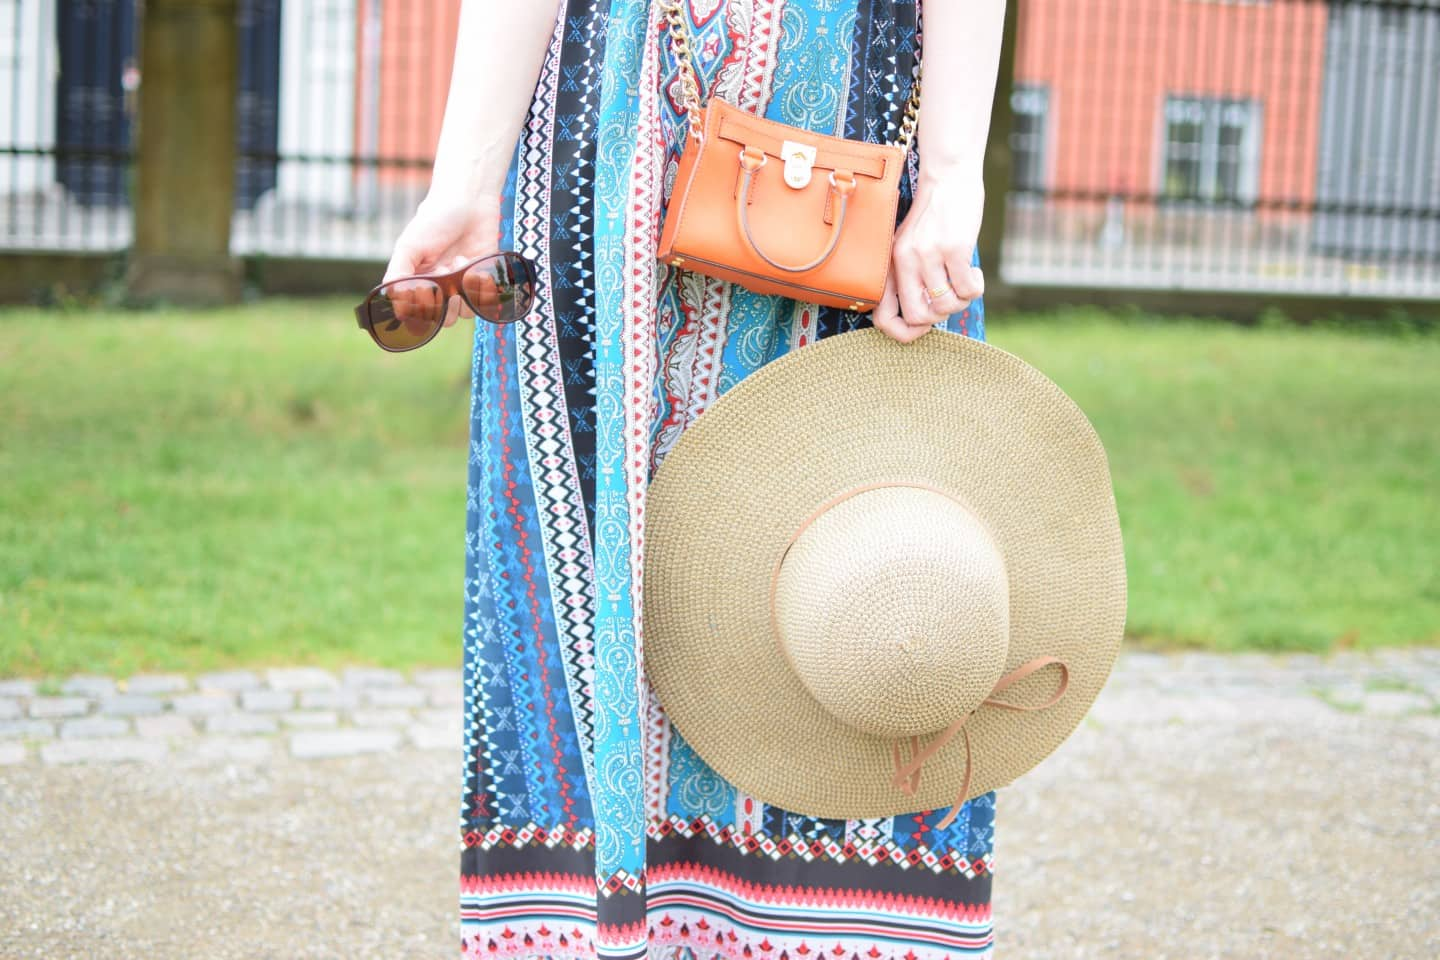 Maxi Dress & Mini Bag